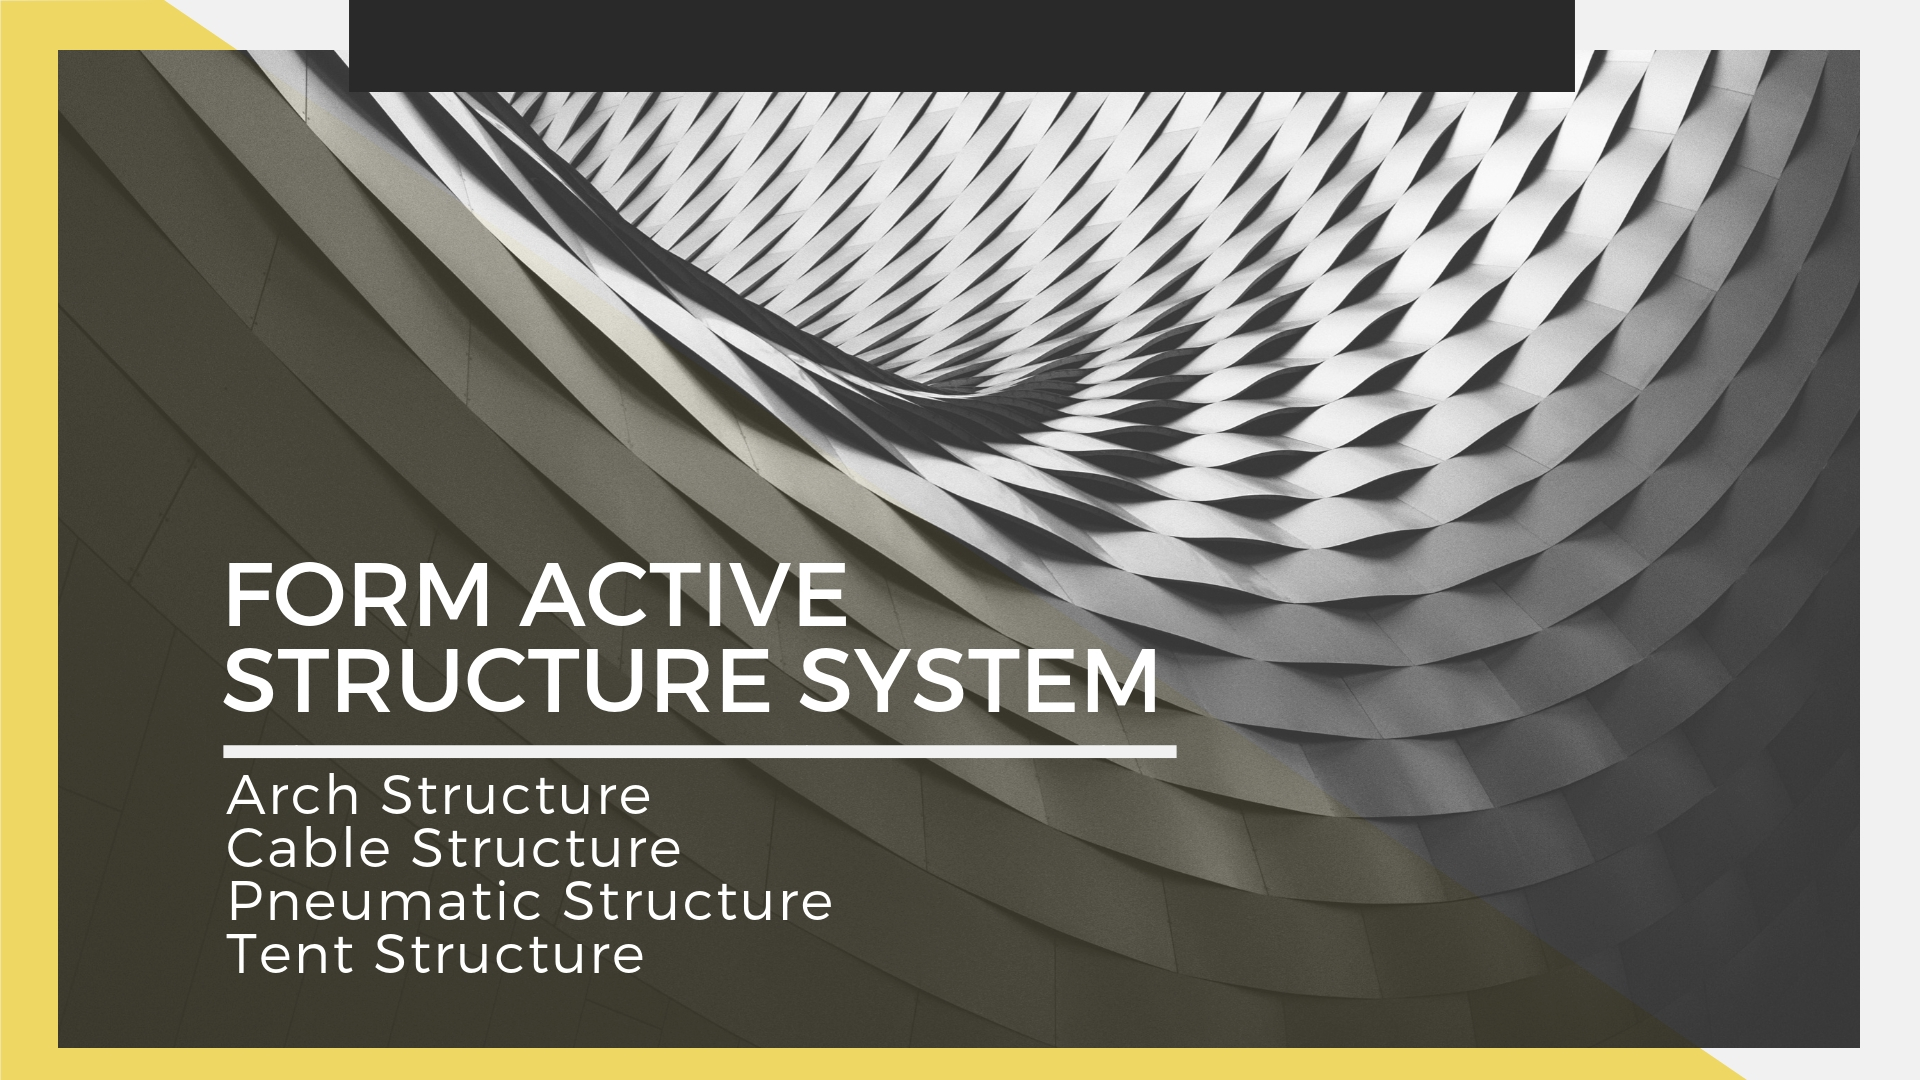 form active structure systems